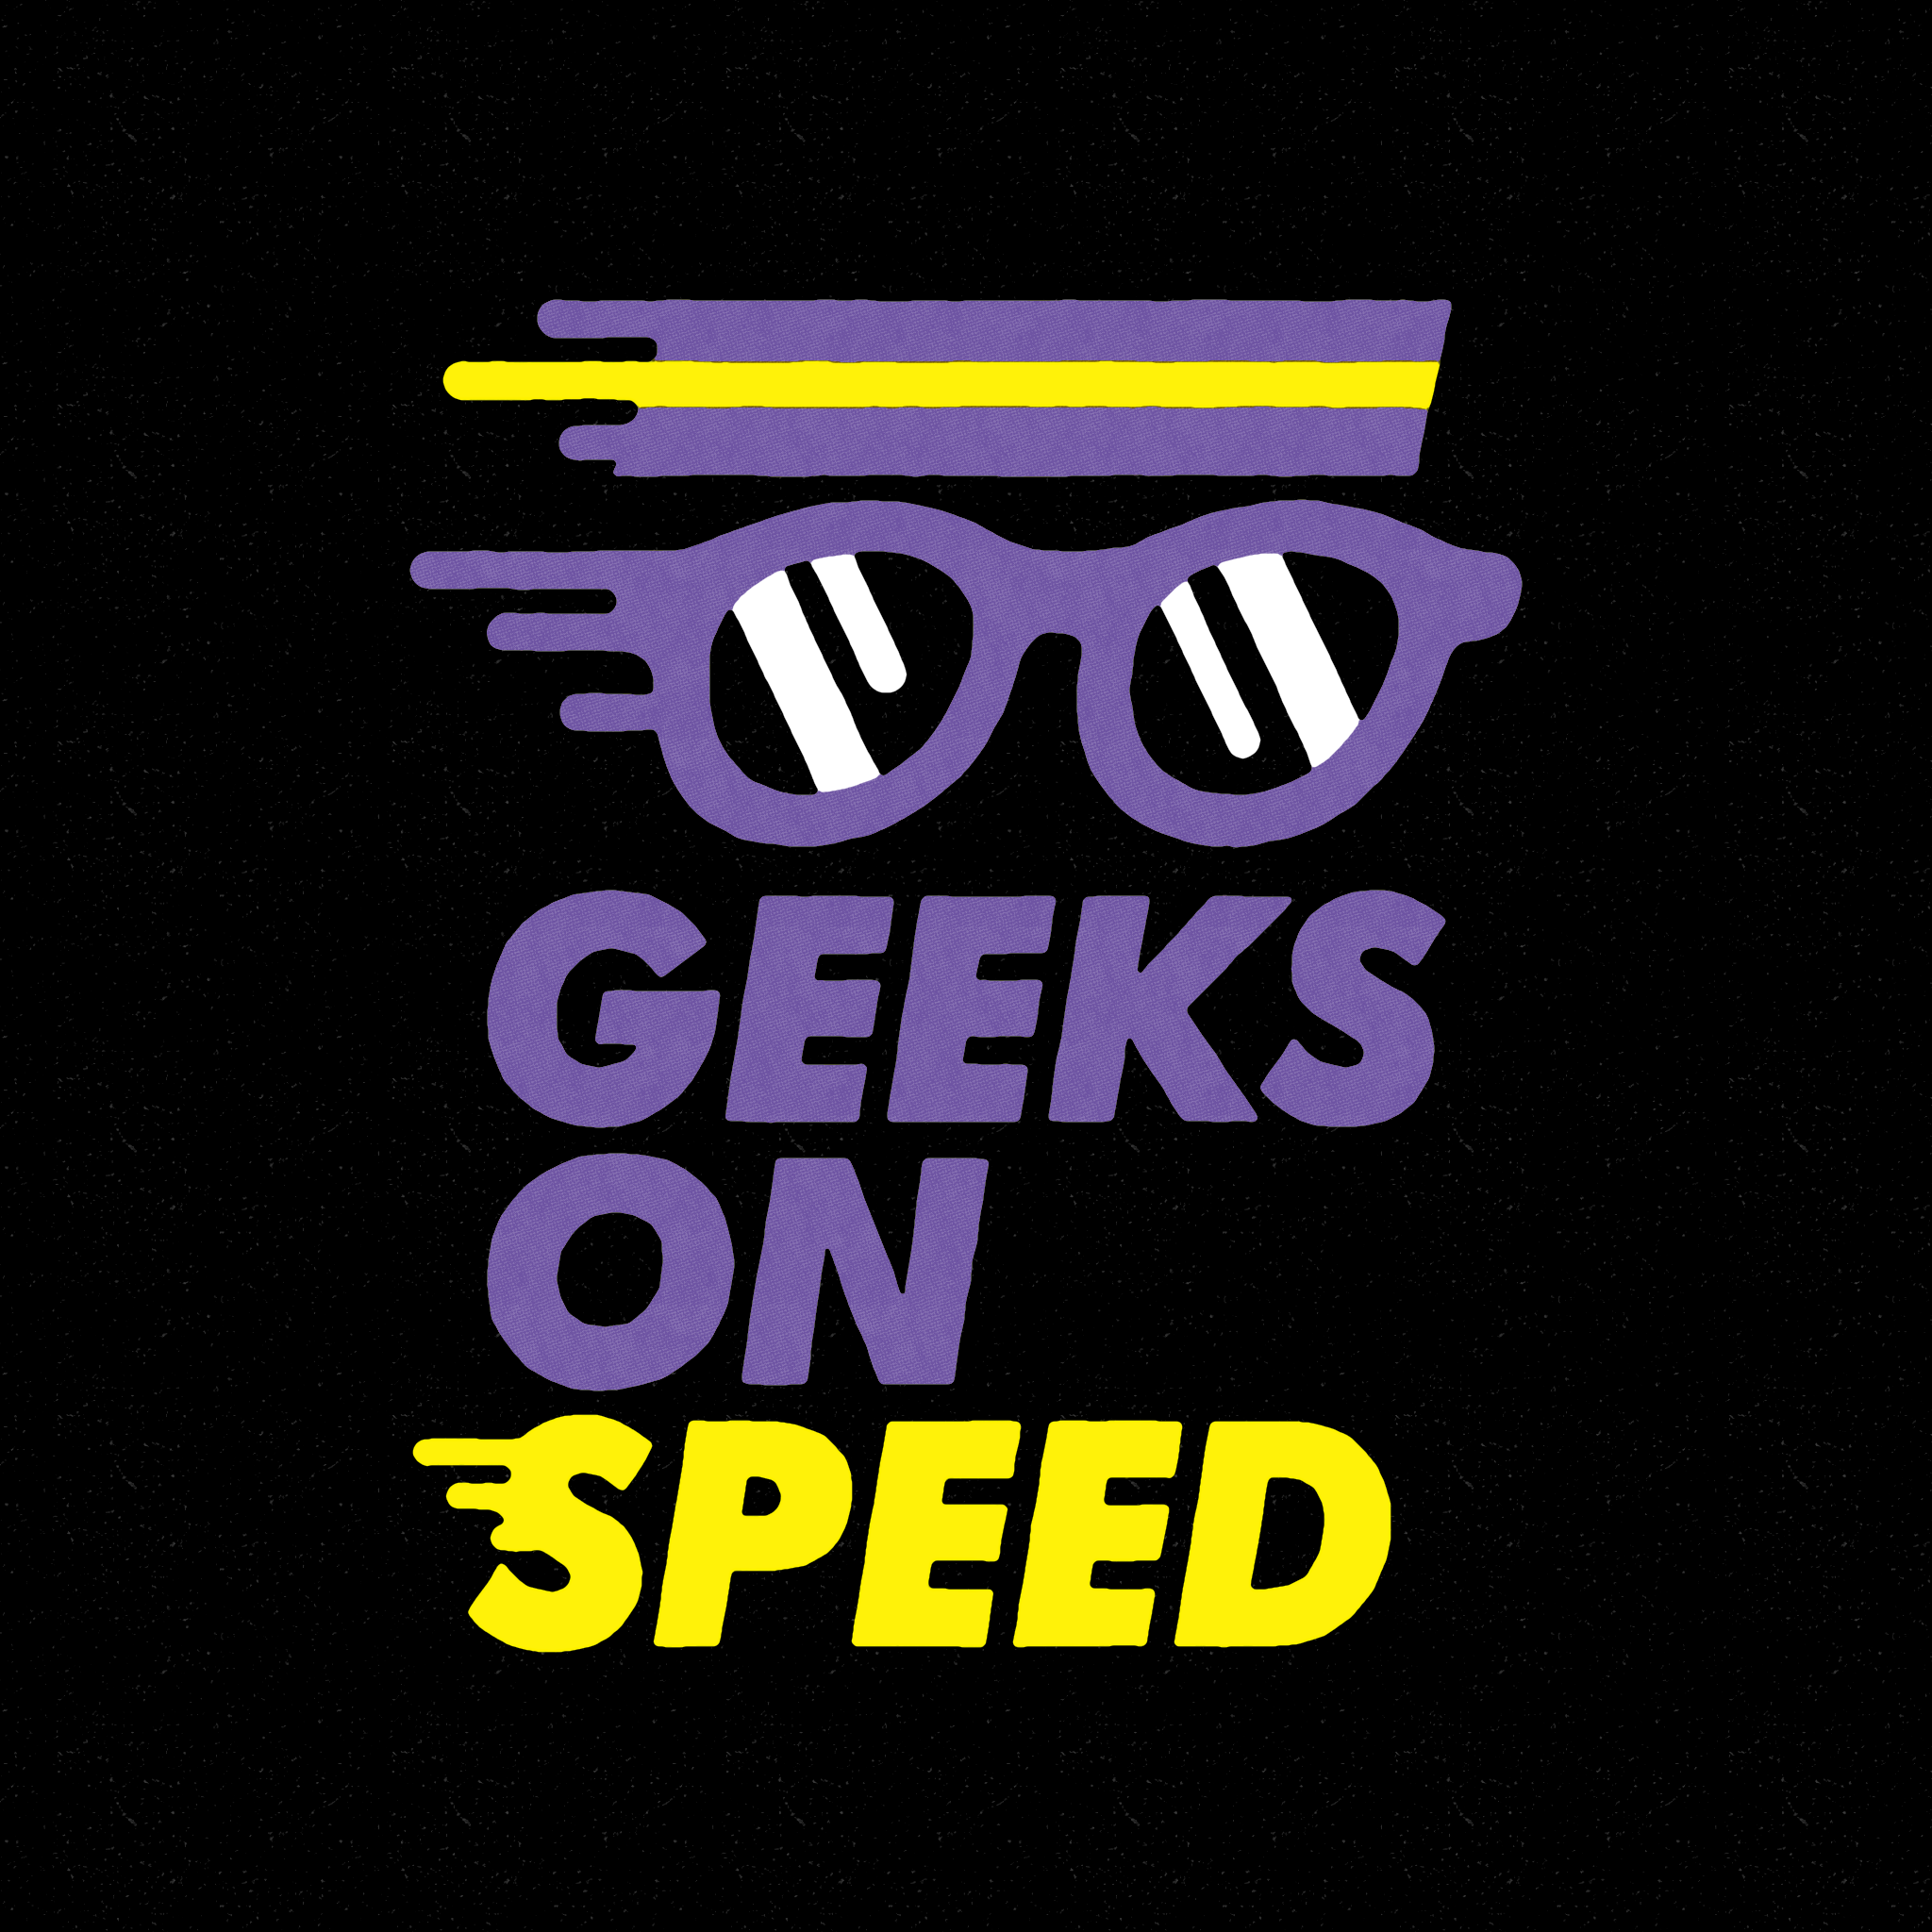 Poolga mauro gatti geeks on speed geeks on speed voltagebd Gallery